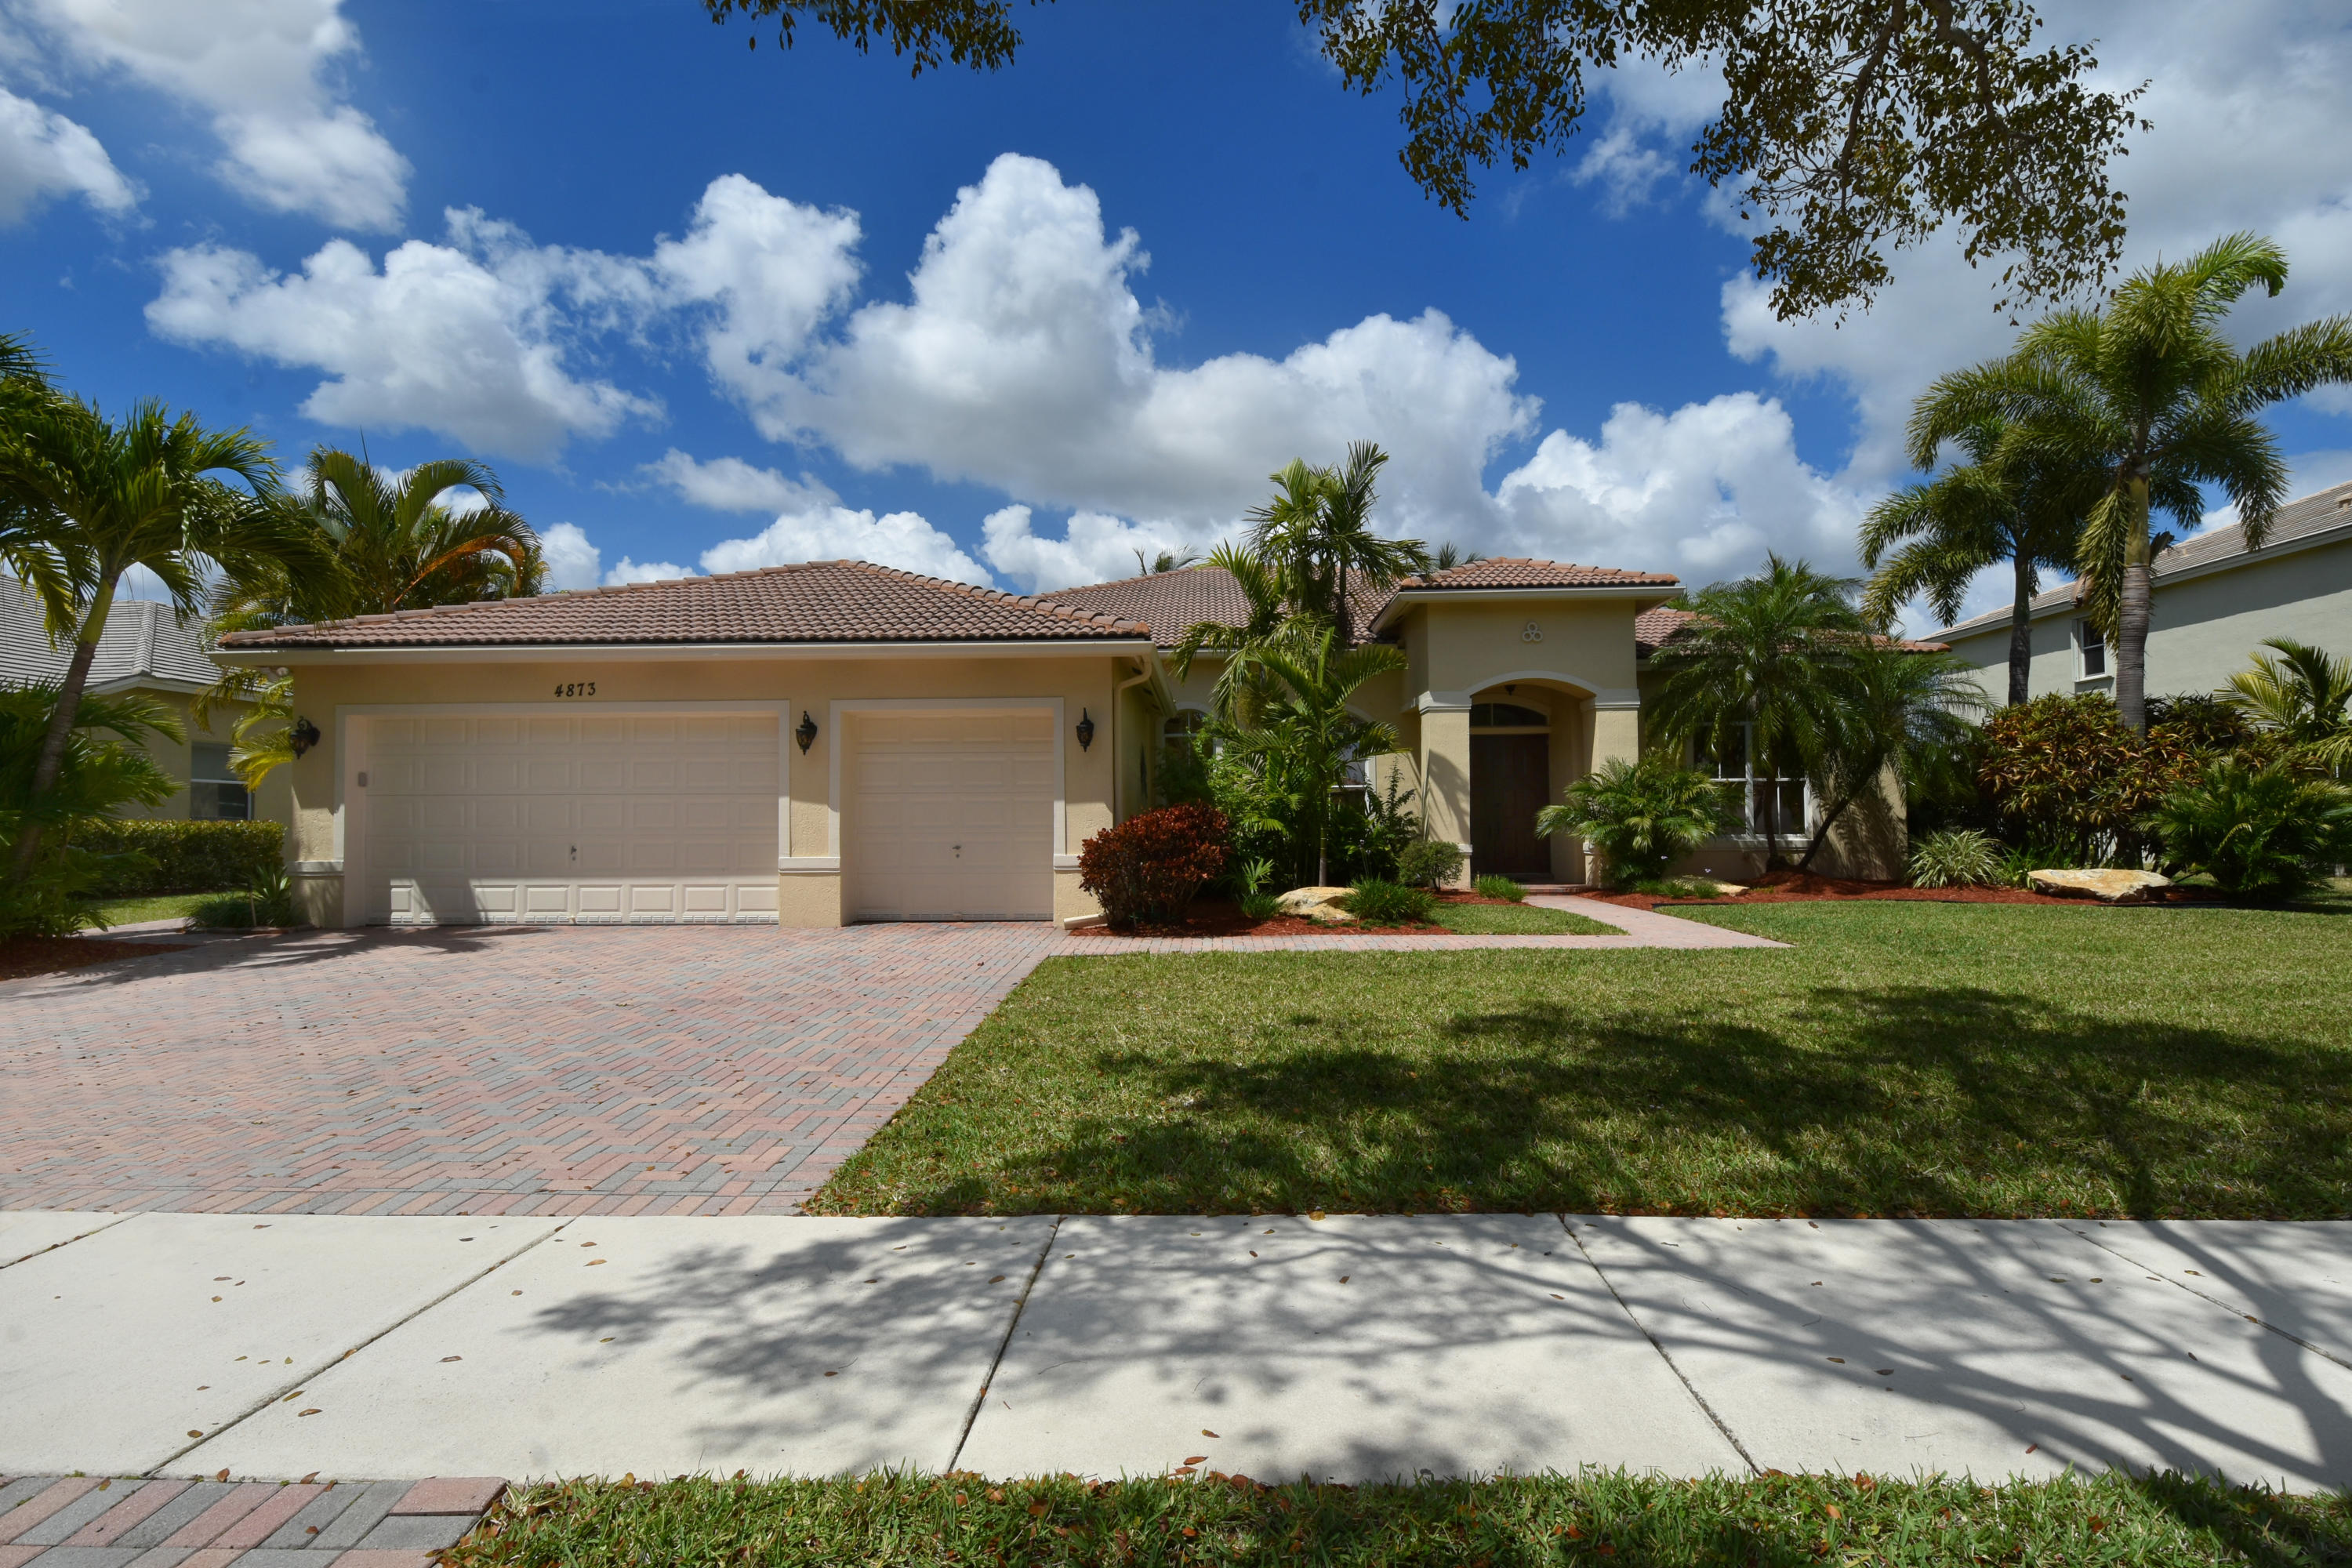 Home for sale in Hibbs Grove Cooper City Florida